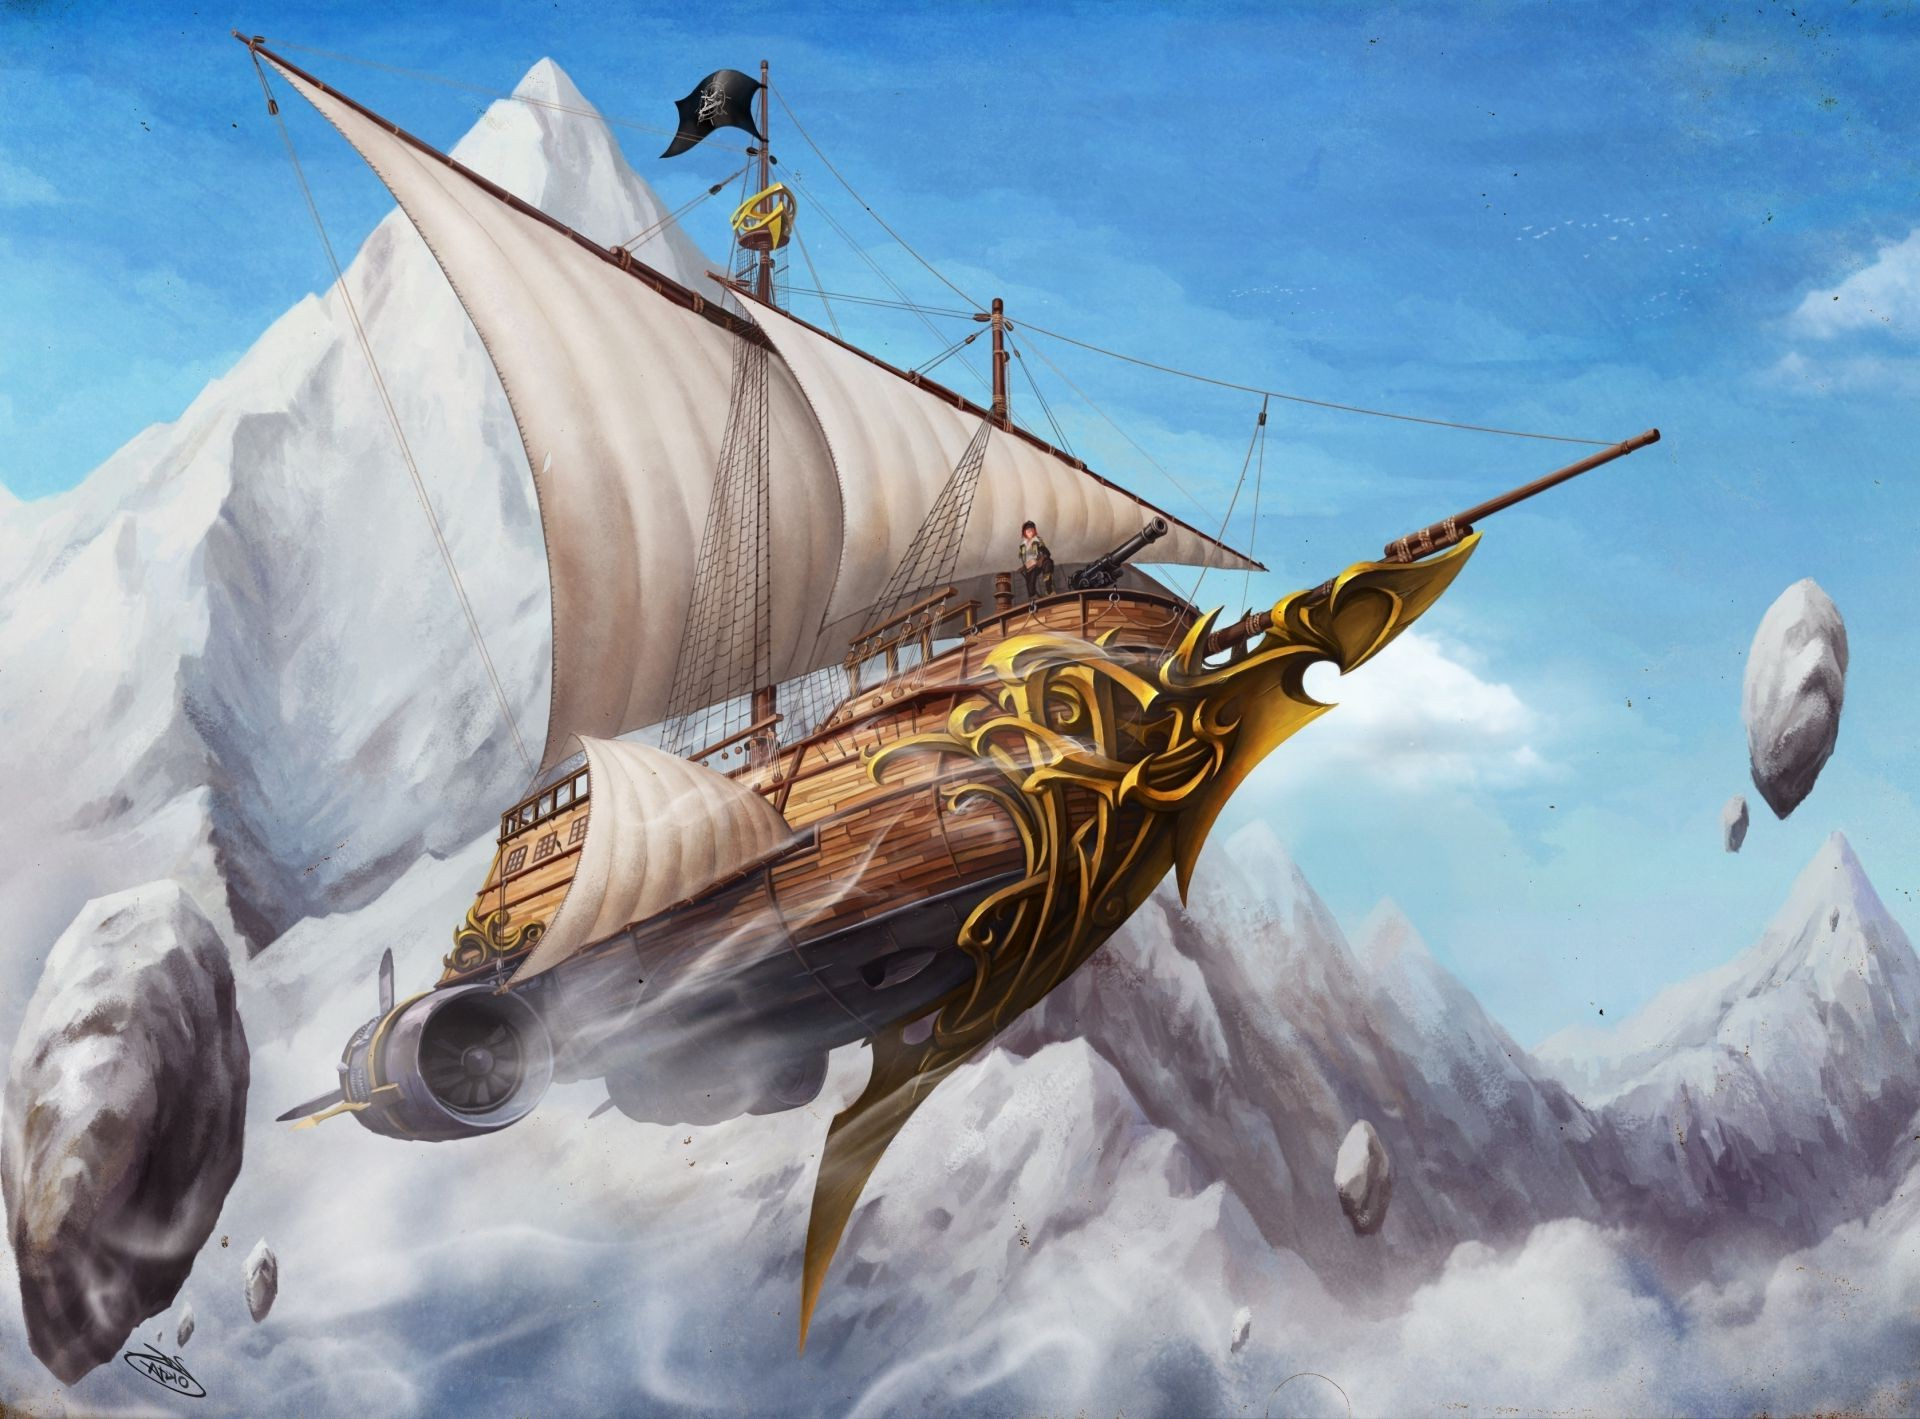 man sails the ship flying stones, rocks Art